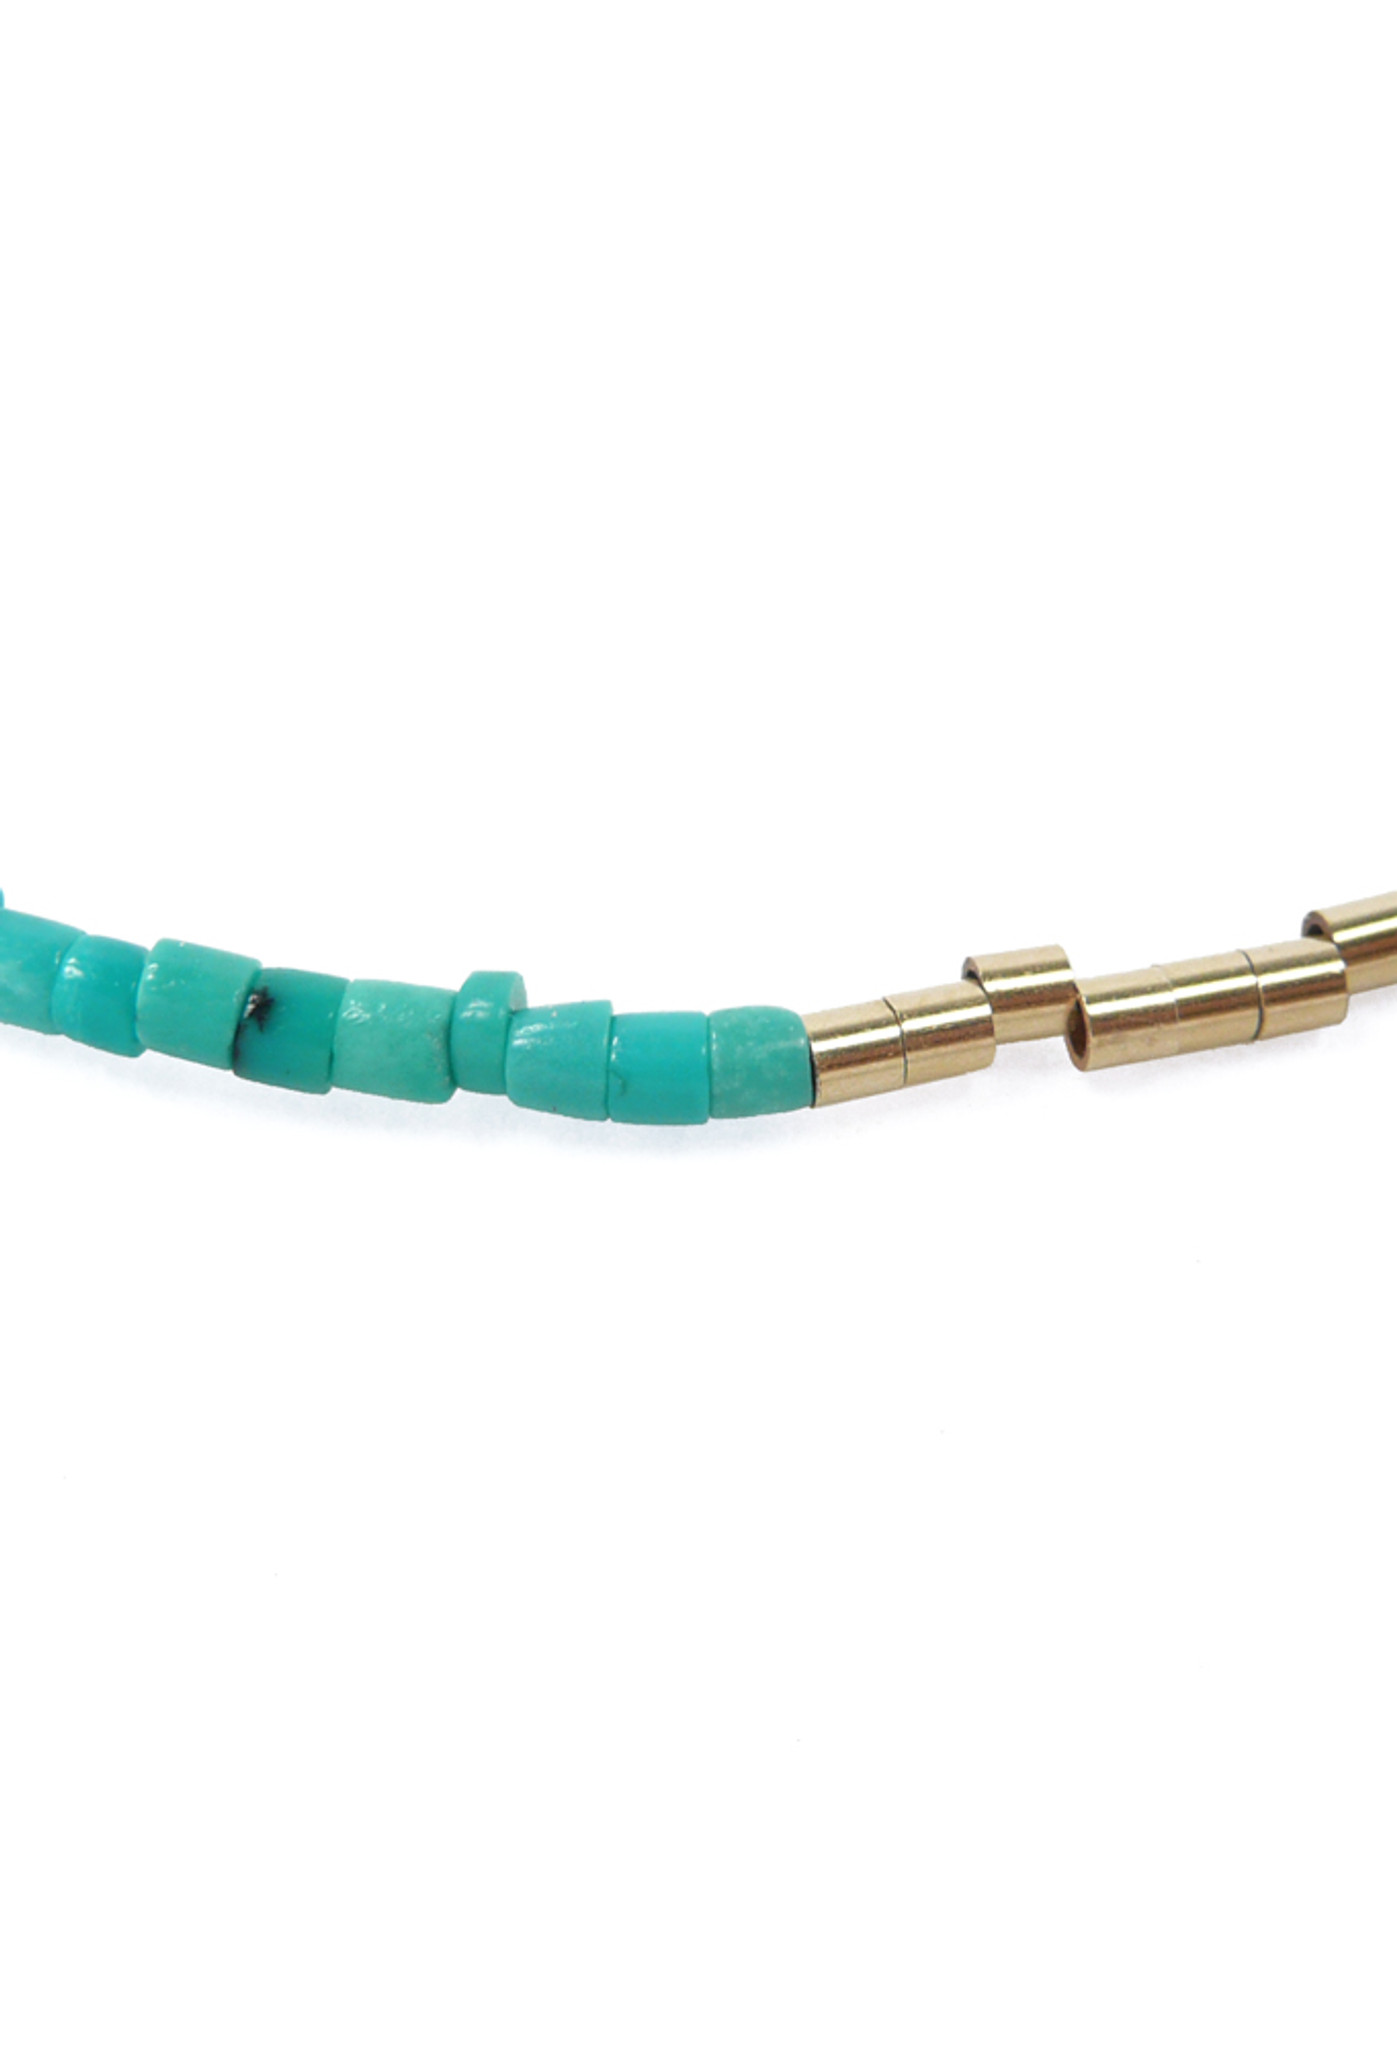 Close Up View of Turquoise & Gold Bead Necklace and Bracelet by Jewelry Designer Nektar De Stagni